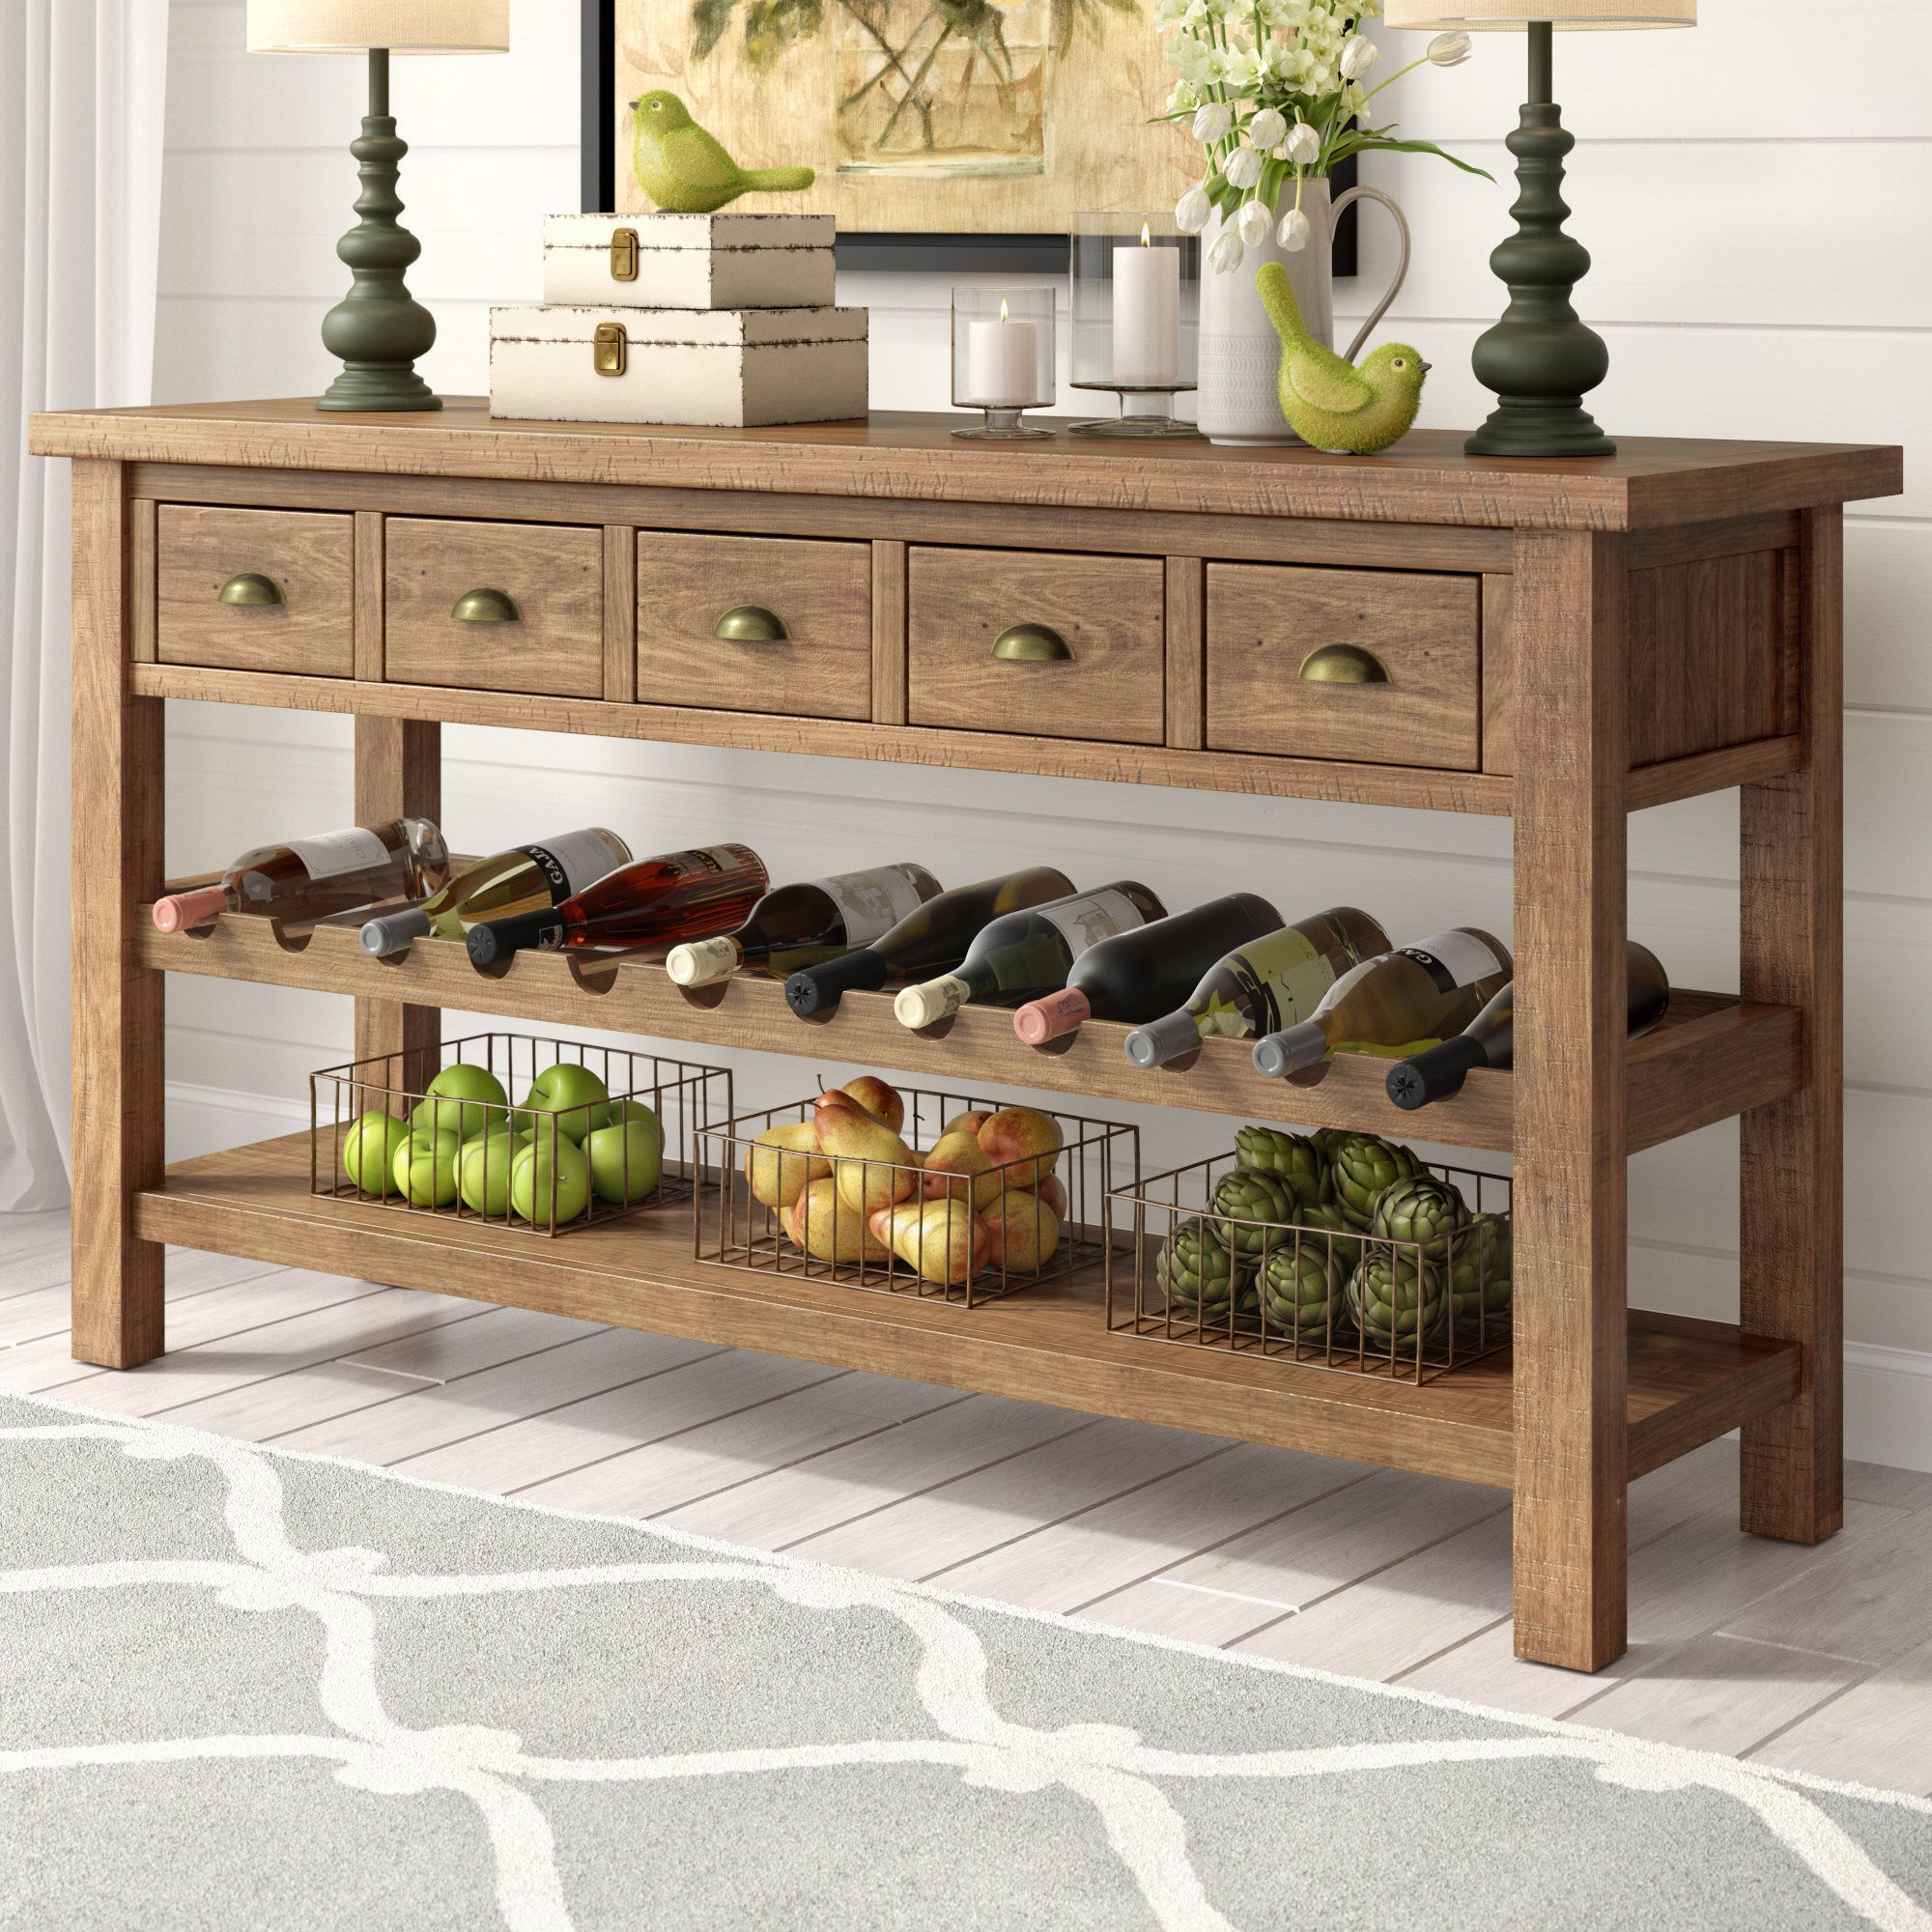 Buffet Table Decor, Dining Room Buffet Table With Wine Rack